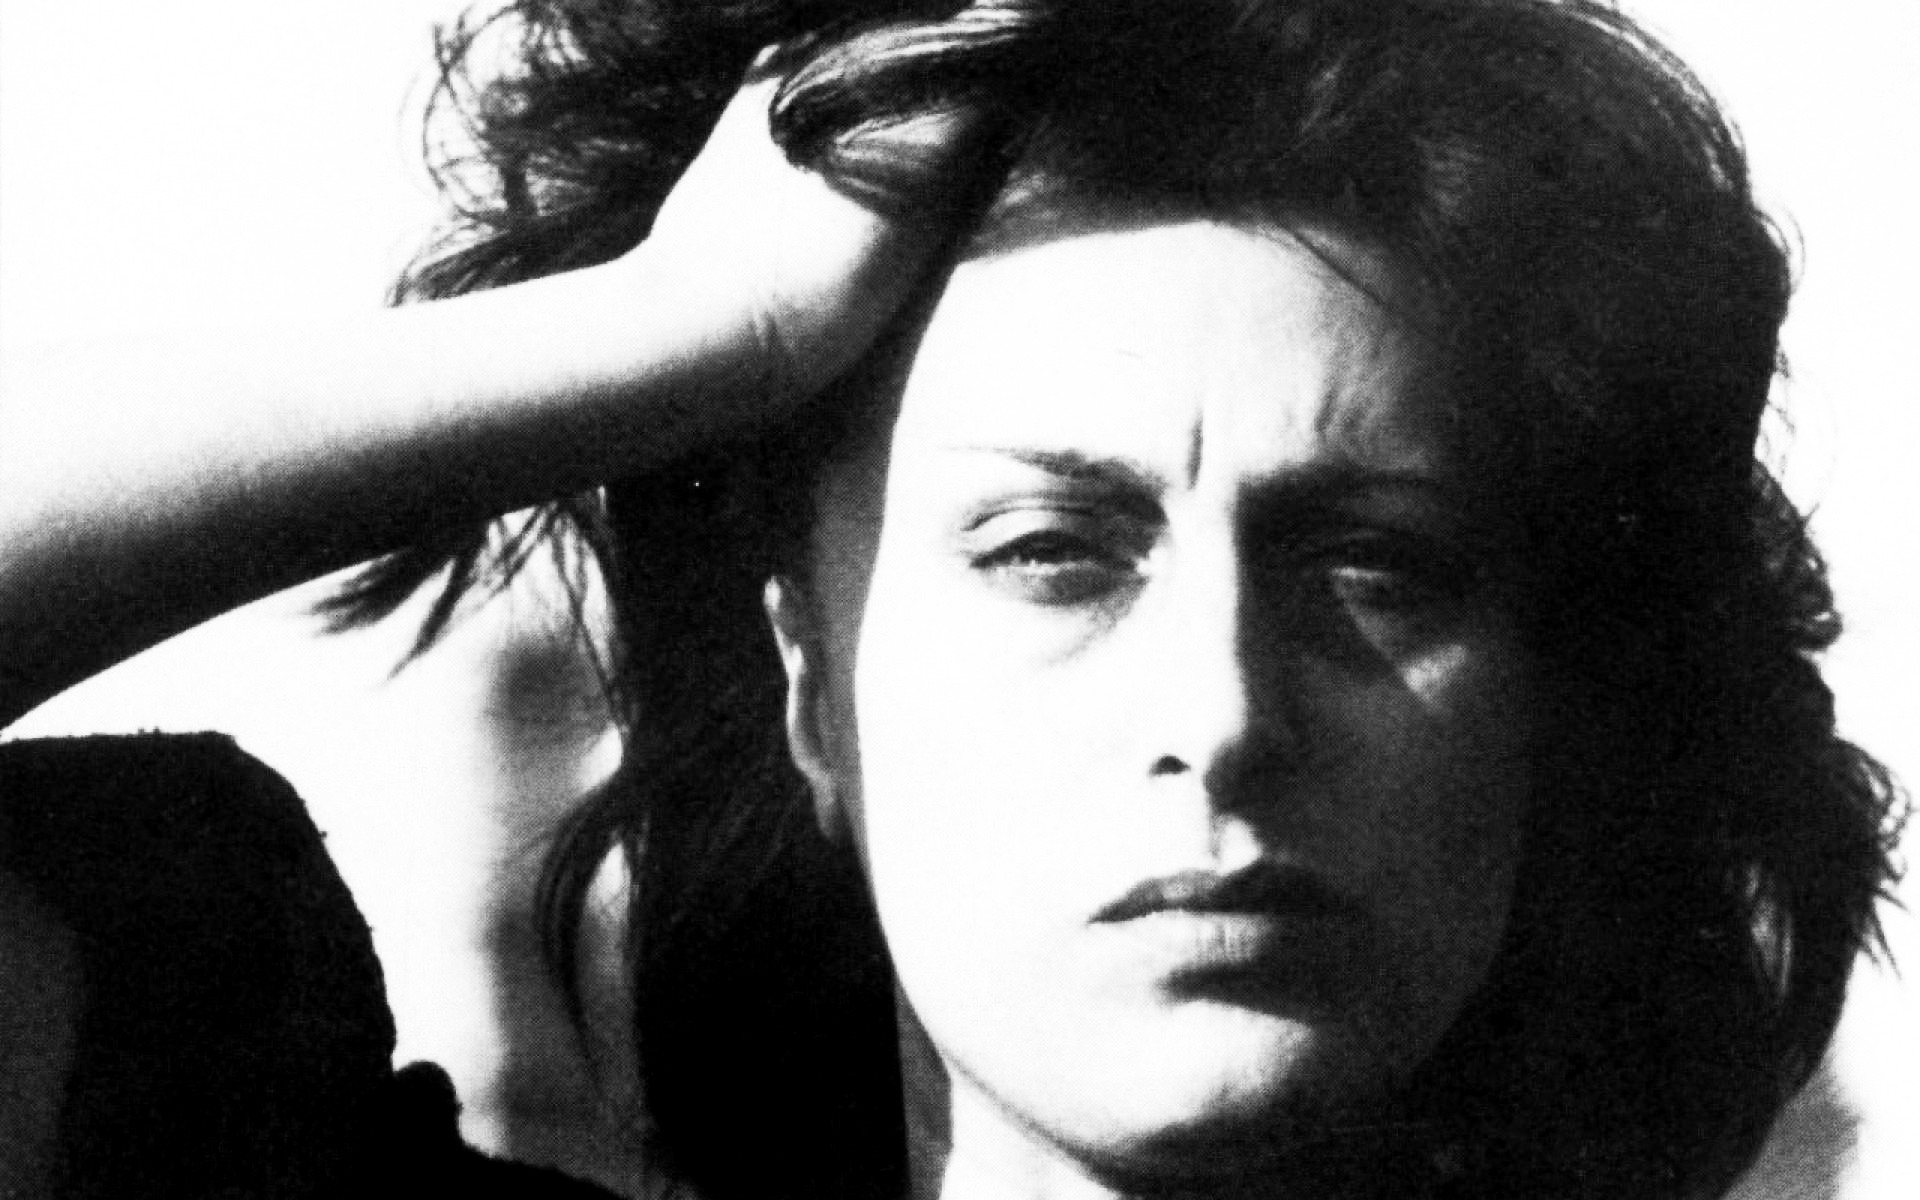 Anna Magnani cult cinema italiano neorealismo film movies cultstories.altervista.org